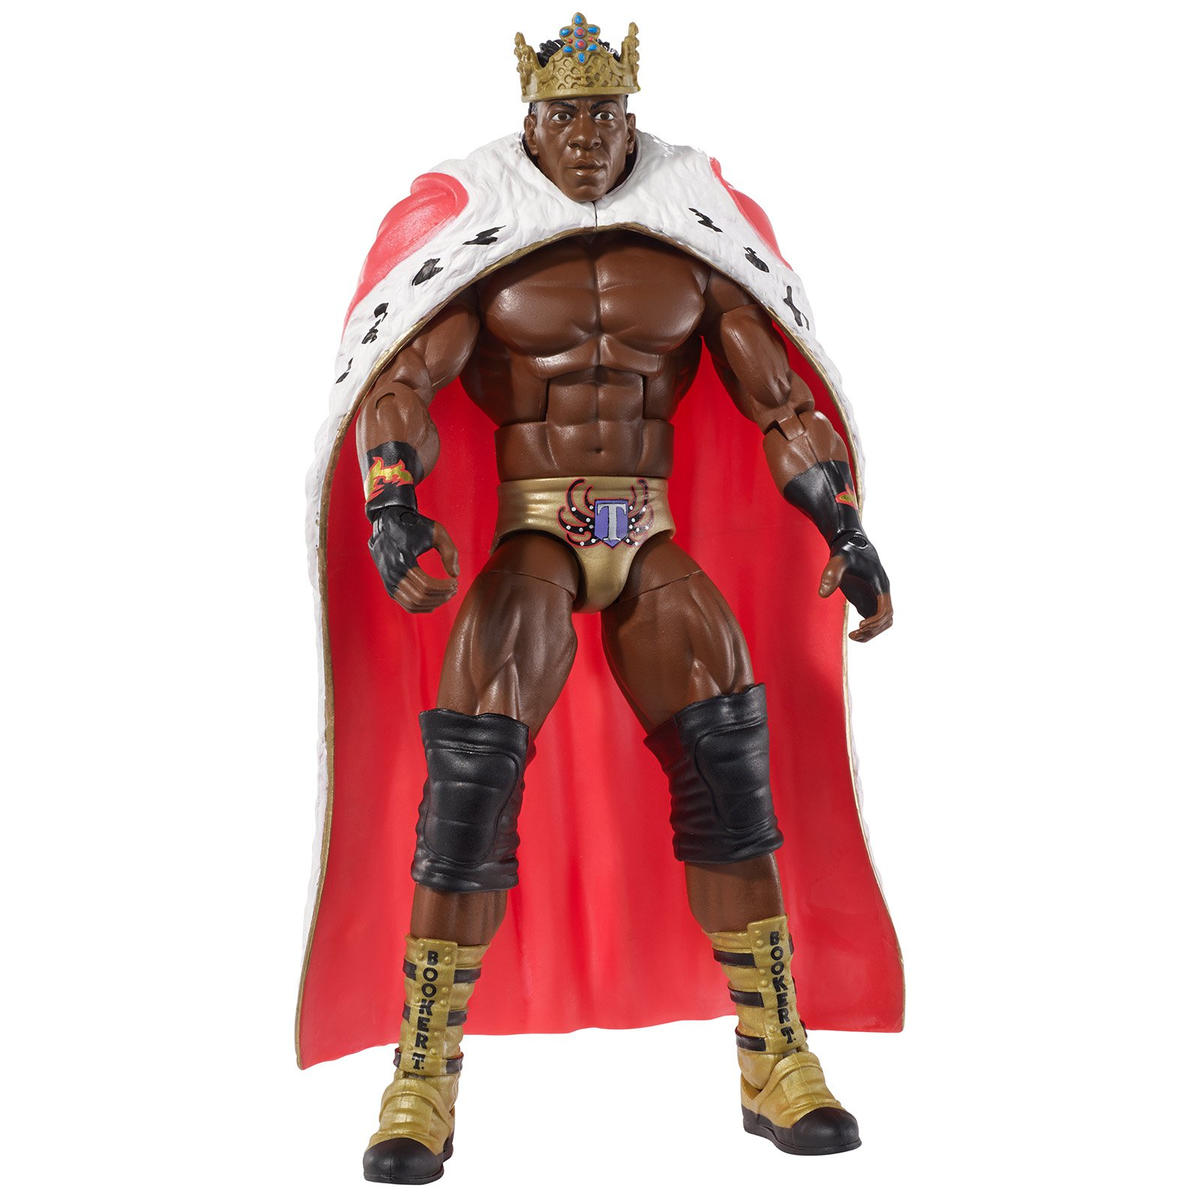 King Booker, with entrance cape, crown and scepter (WWE Hall of Fame Class of 2013)